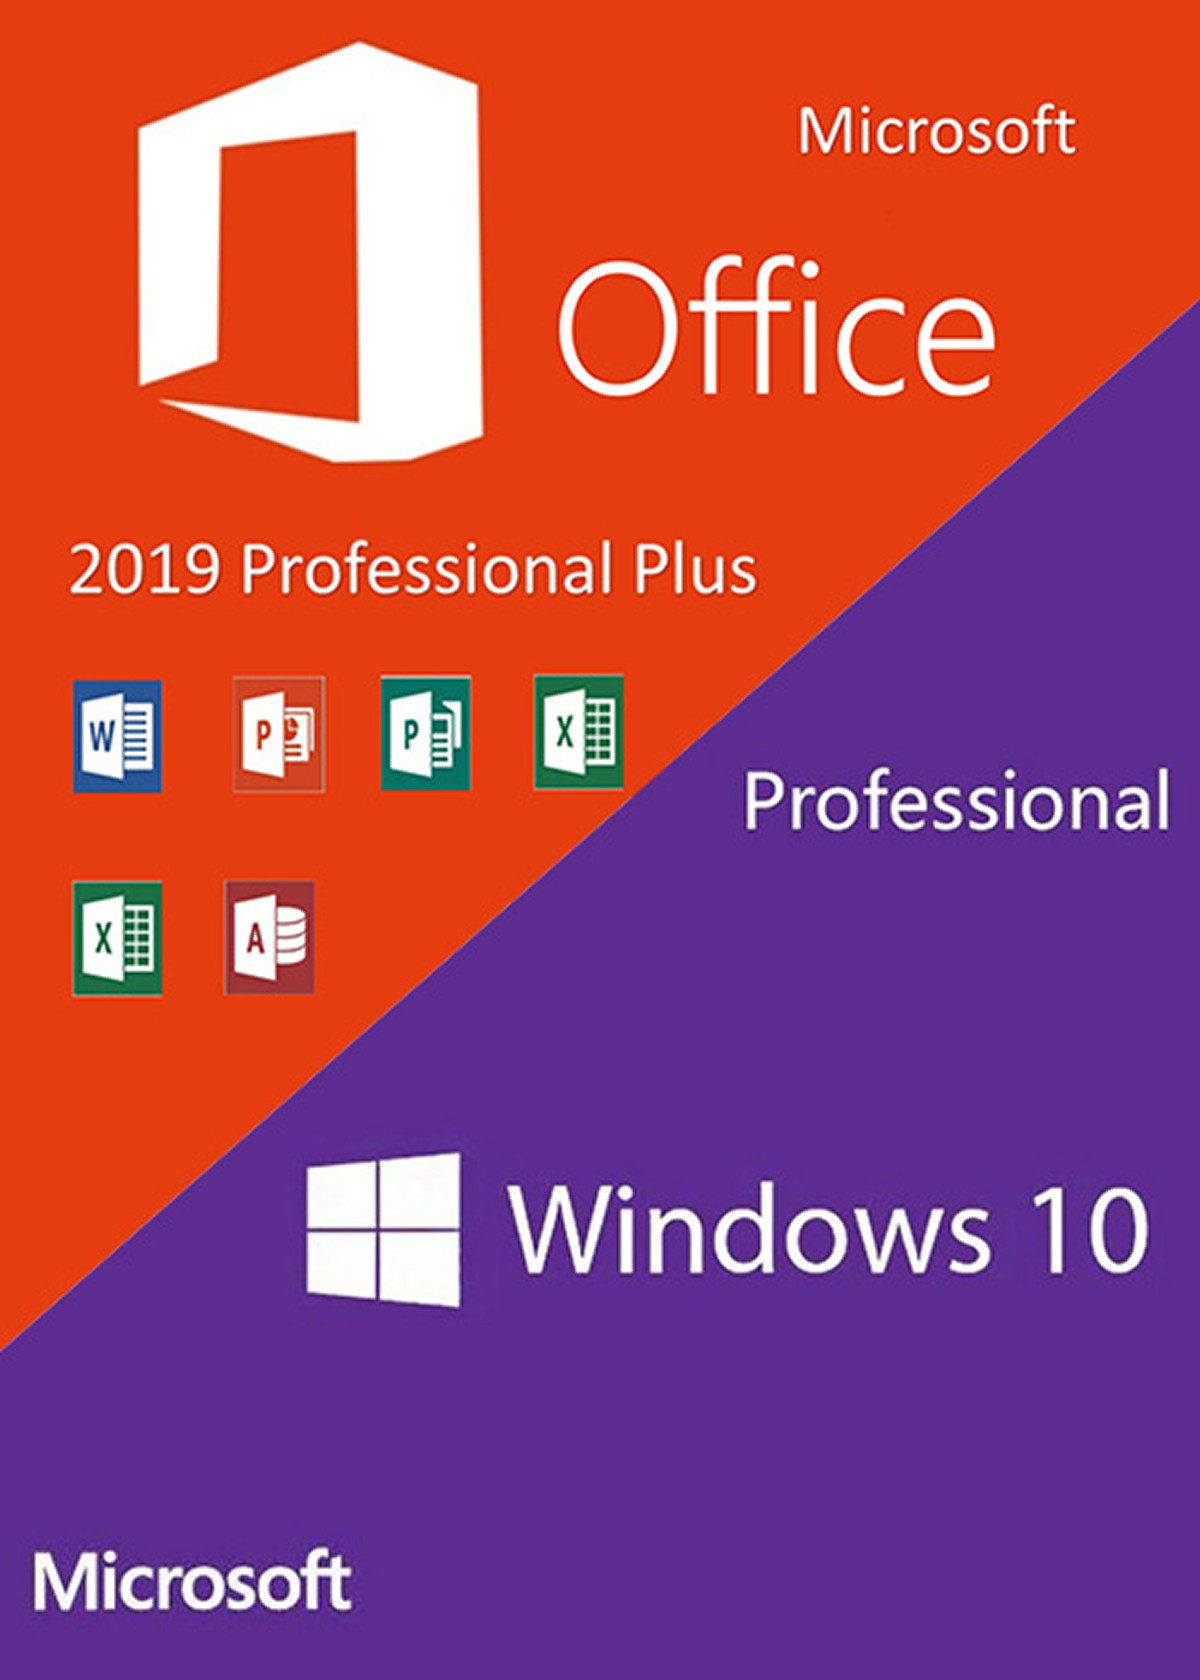 licence-pas-cher windows-pas-cher windows-10-pro office-2019 pack-windows-10-office-2019